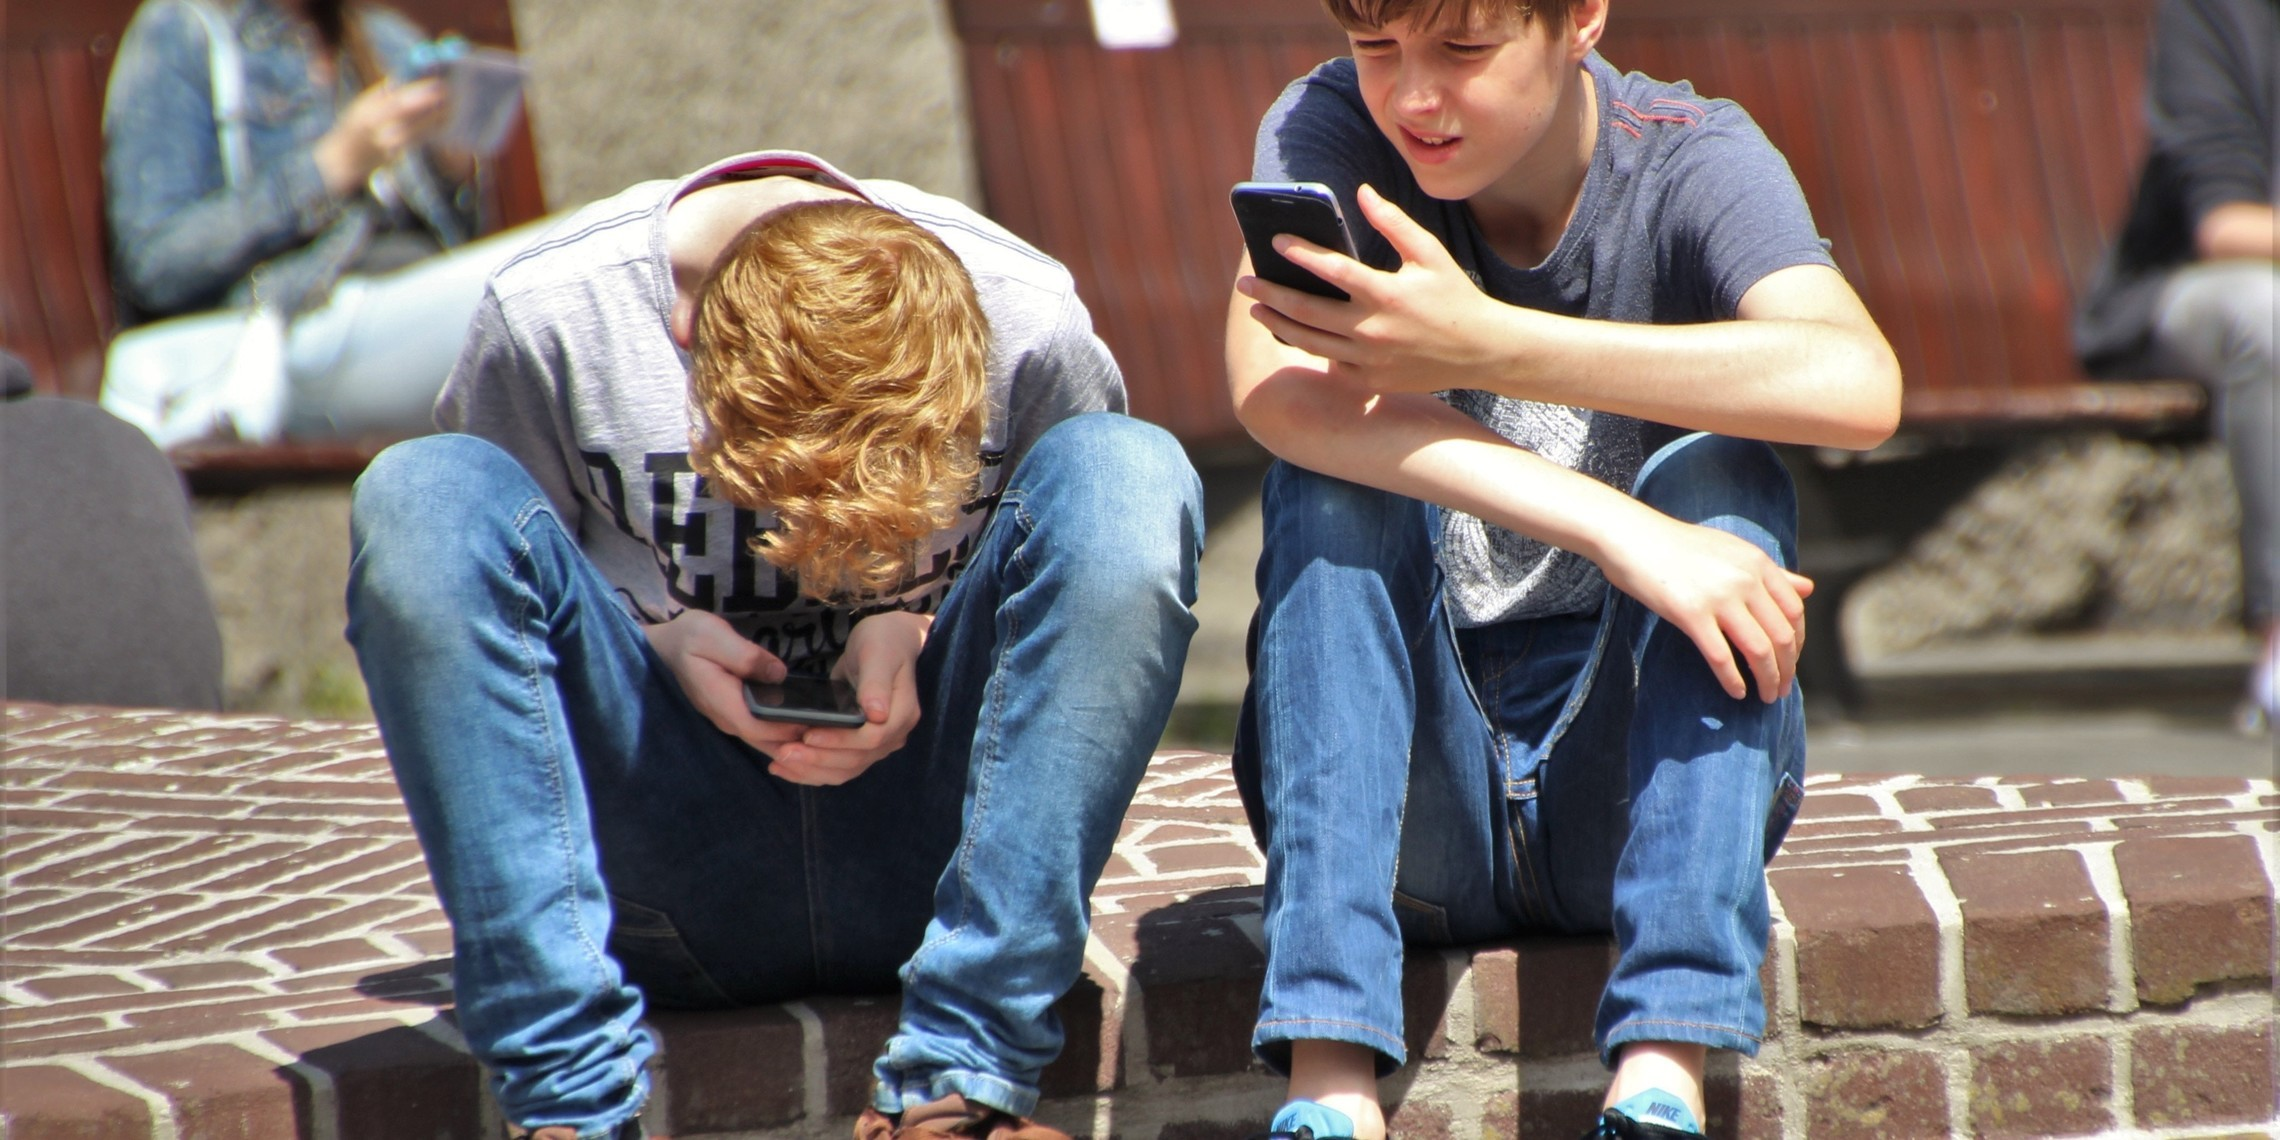 Boys Cellphones Children 159395